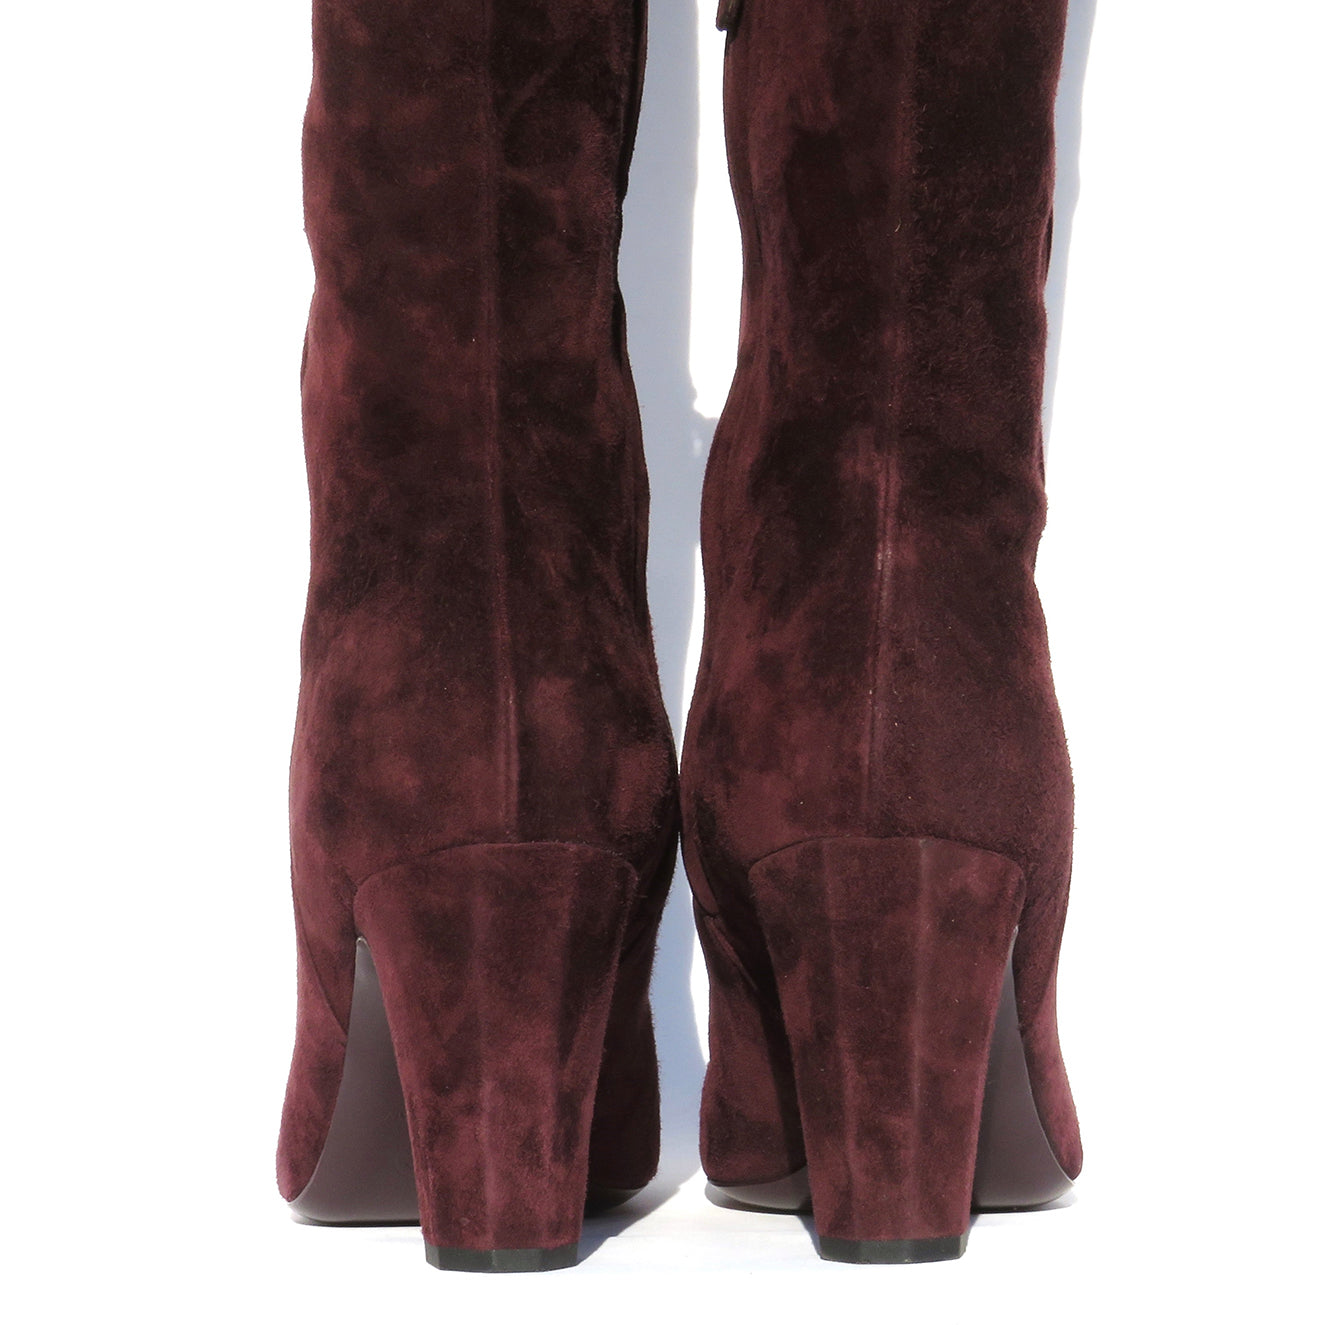 'Sold' CHANEL Bordeaux Burgundy Suede Cap Toe CC Thigh High Over The Knee Tall Boots 39